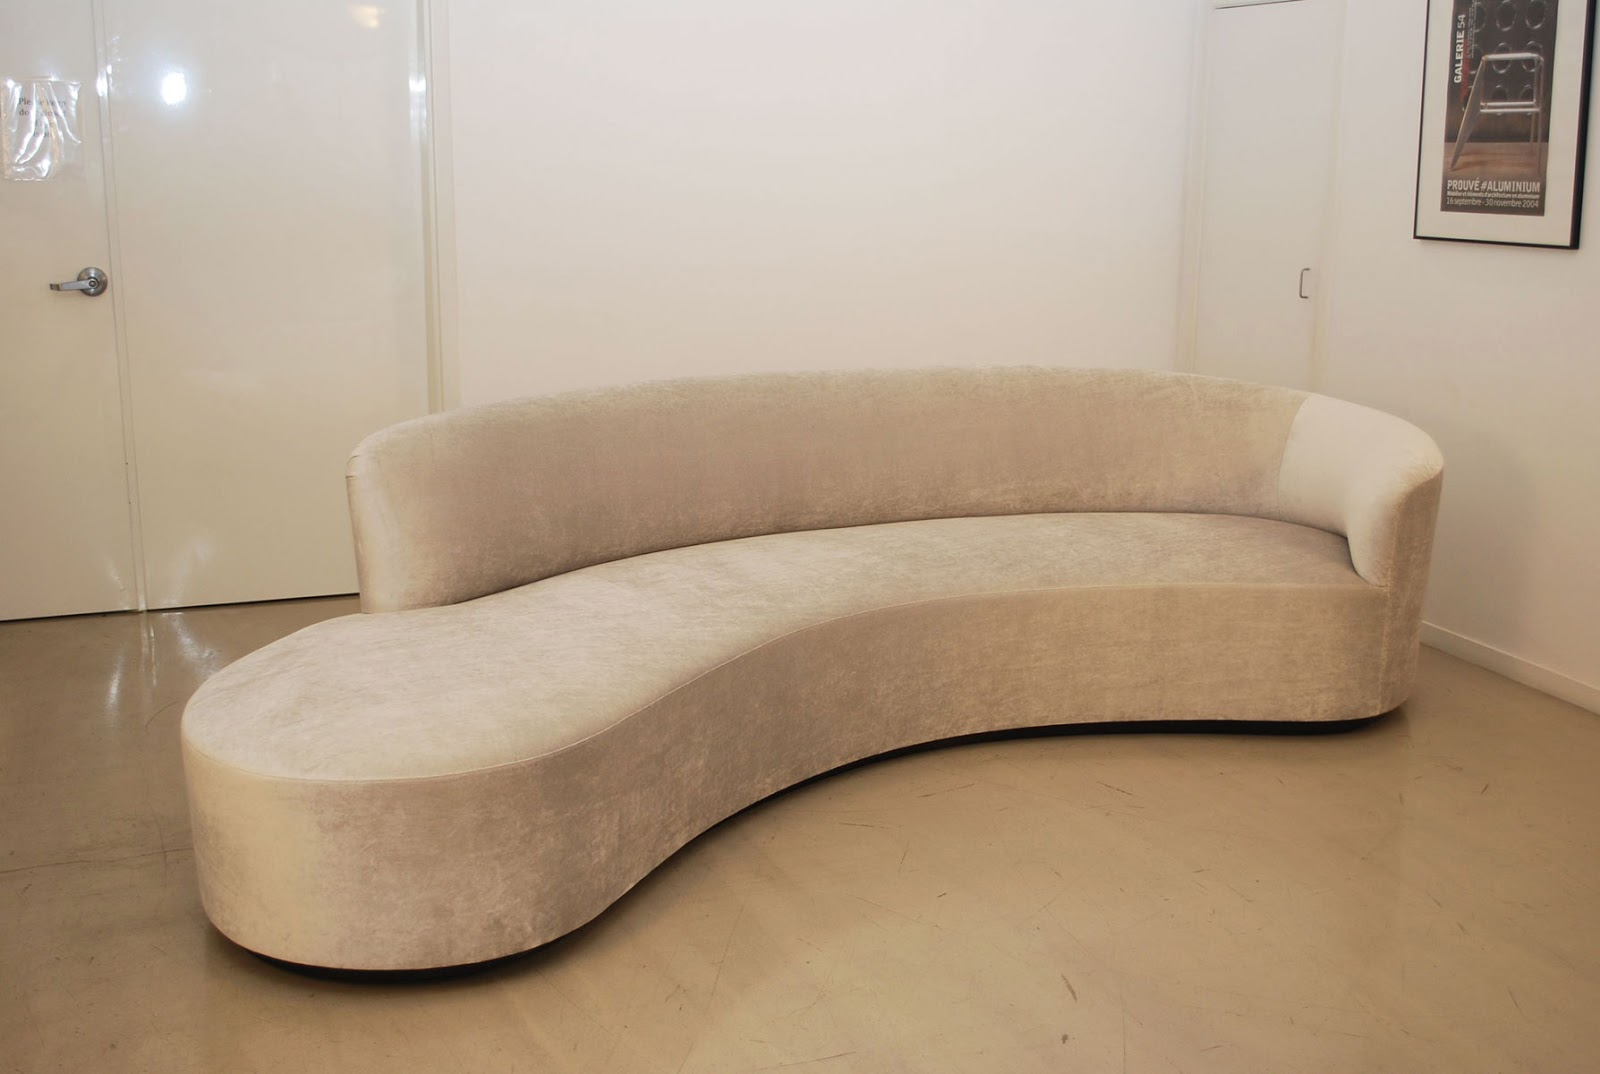 Classic Design Vladimir Kagan Inspired Curved Sofa